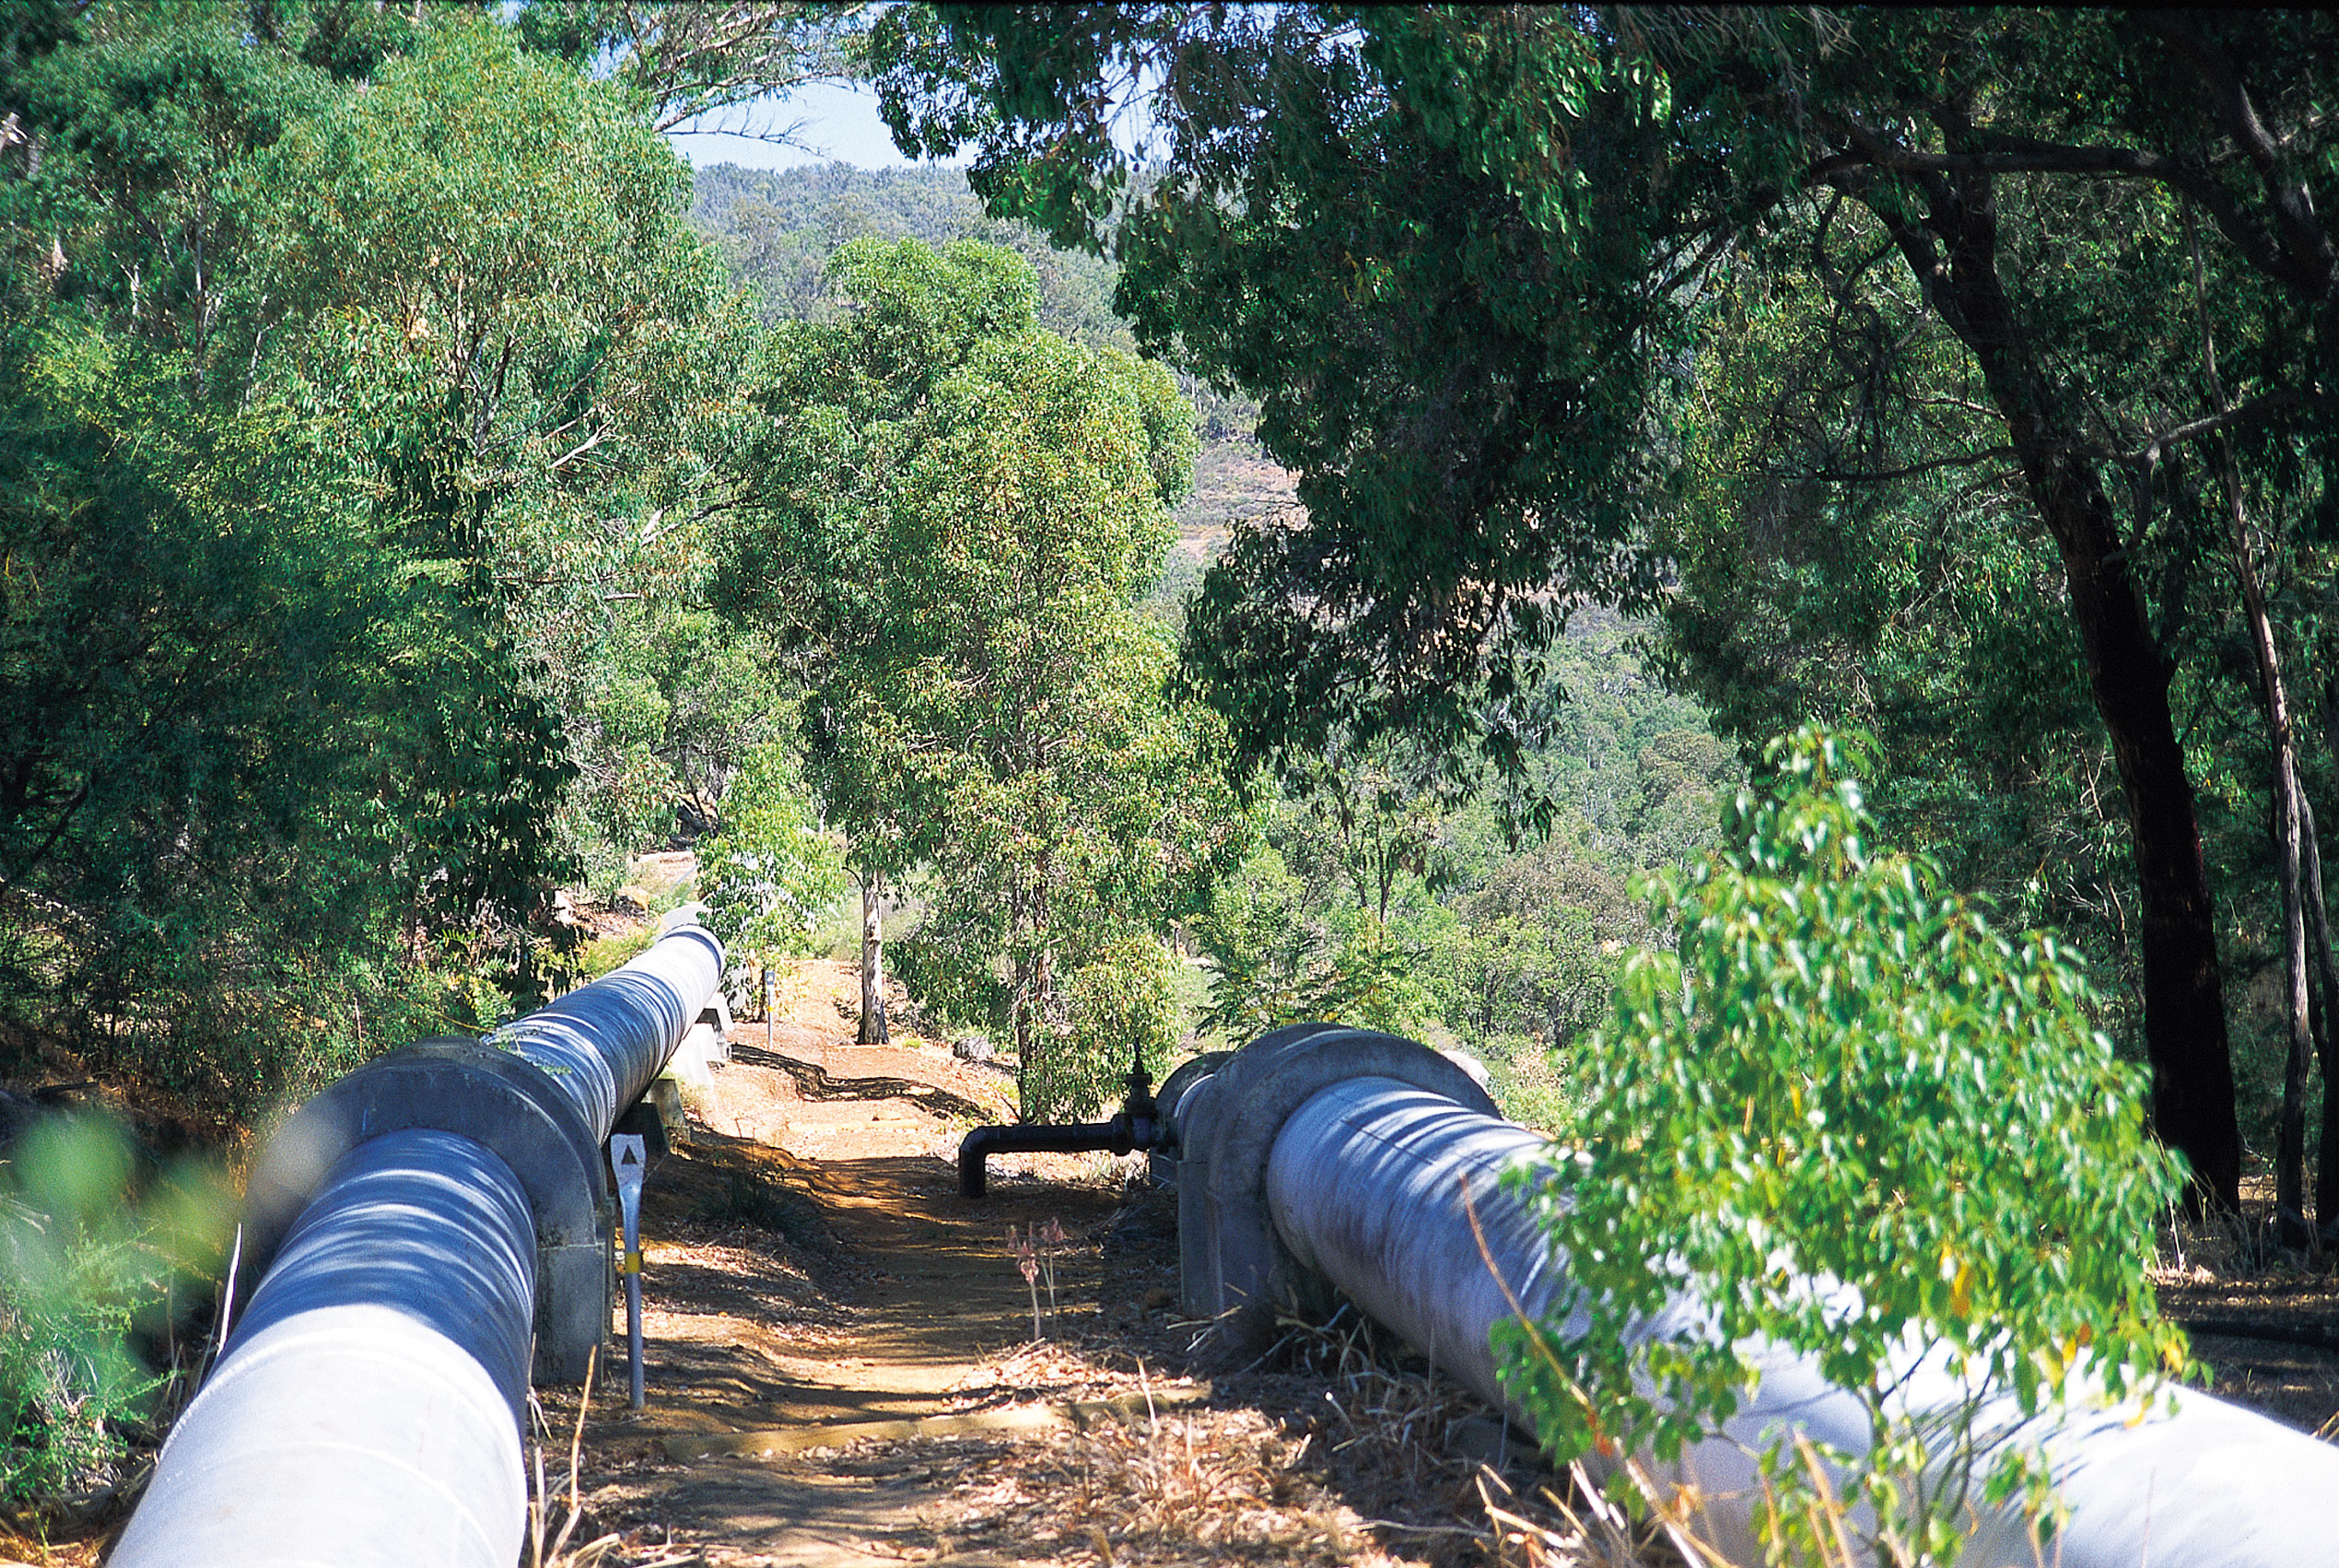 A section of pipe running through forestland.